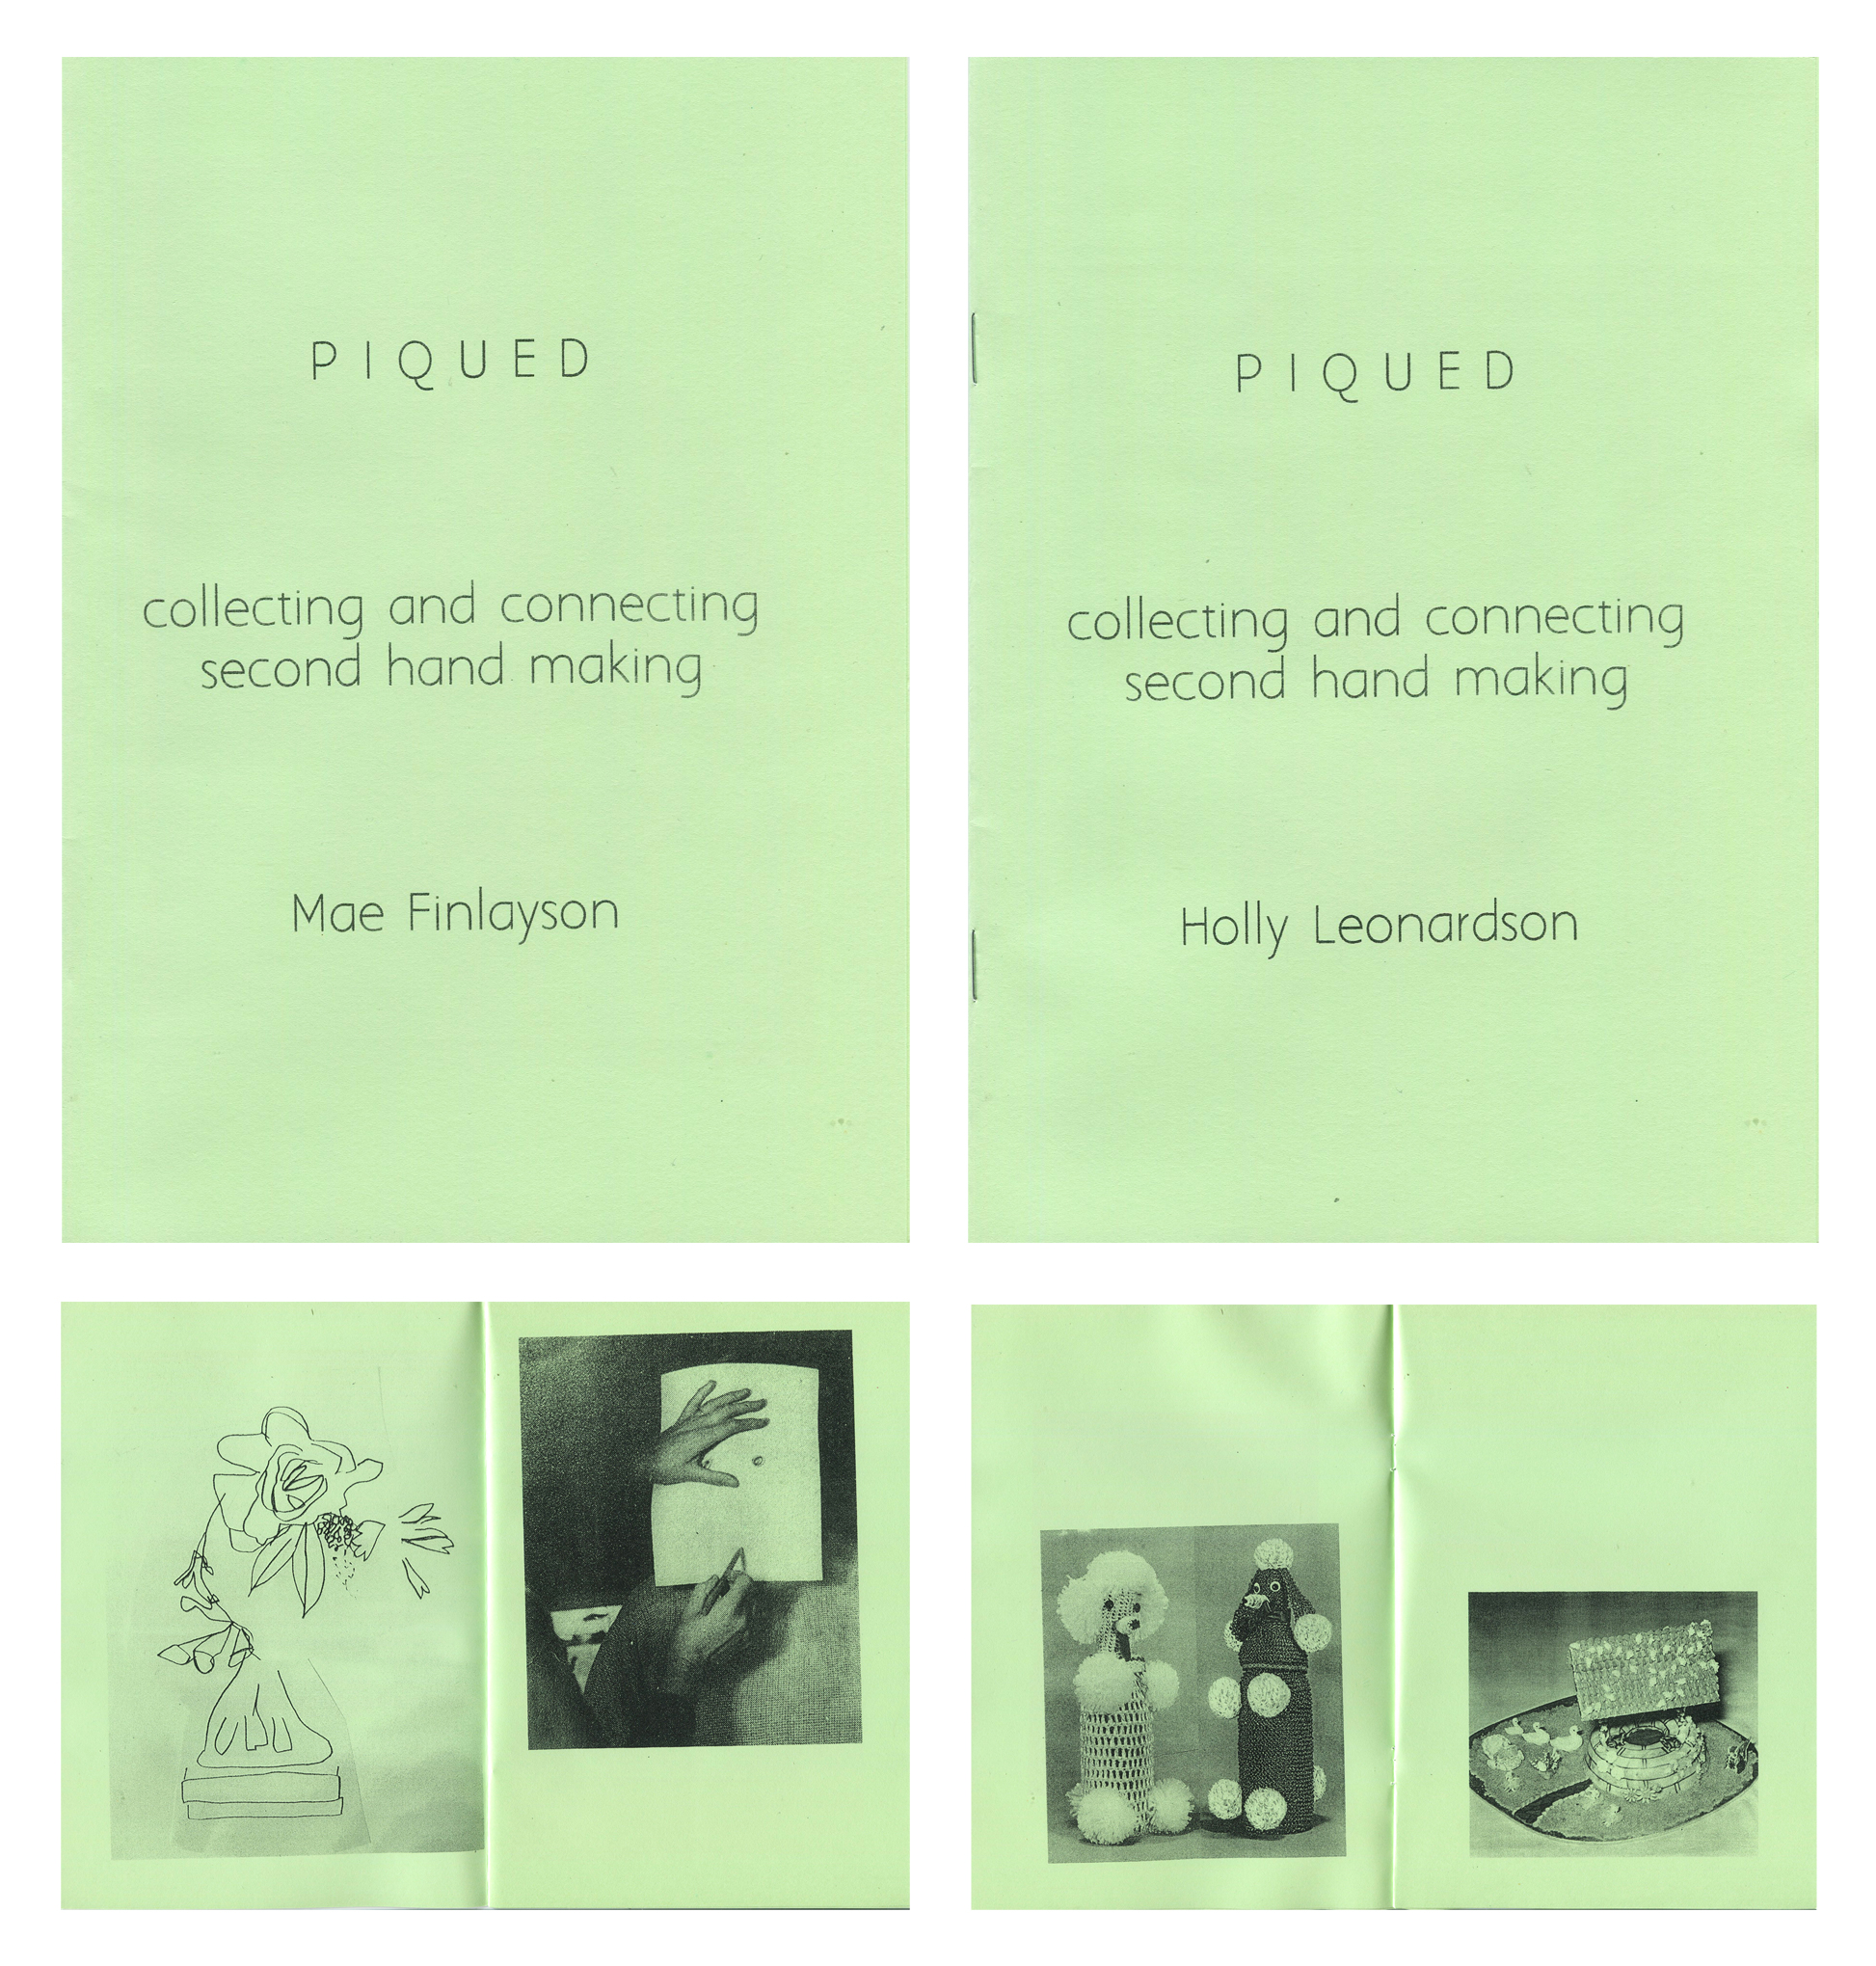 Piqued: Collecting and Connecting Second Hand Making, split zine for the Craft Conference Zine Library curated by Sophia Cai